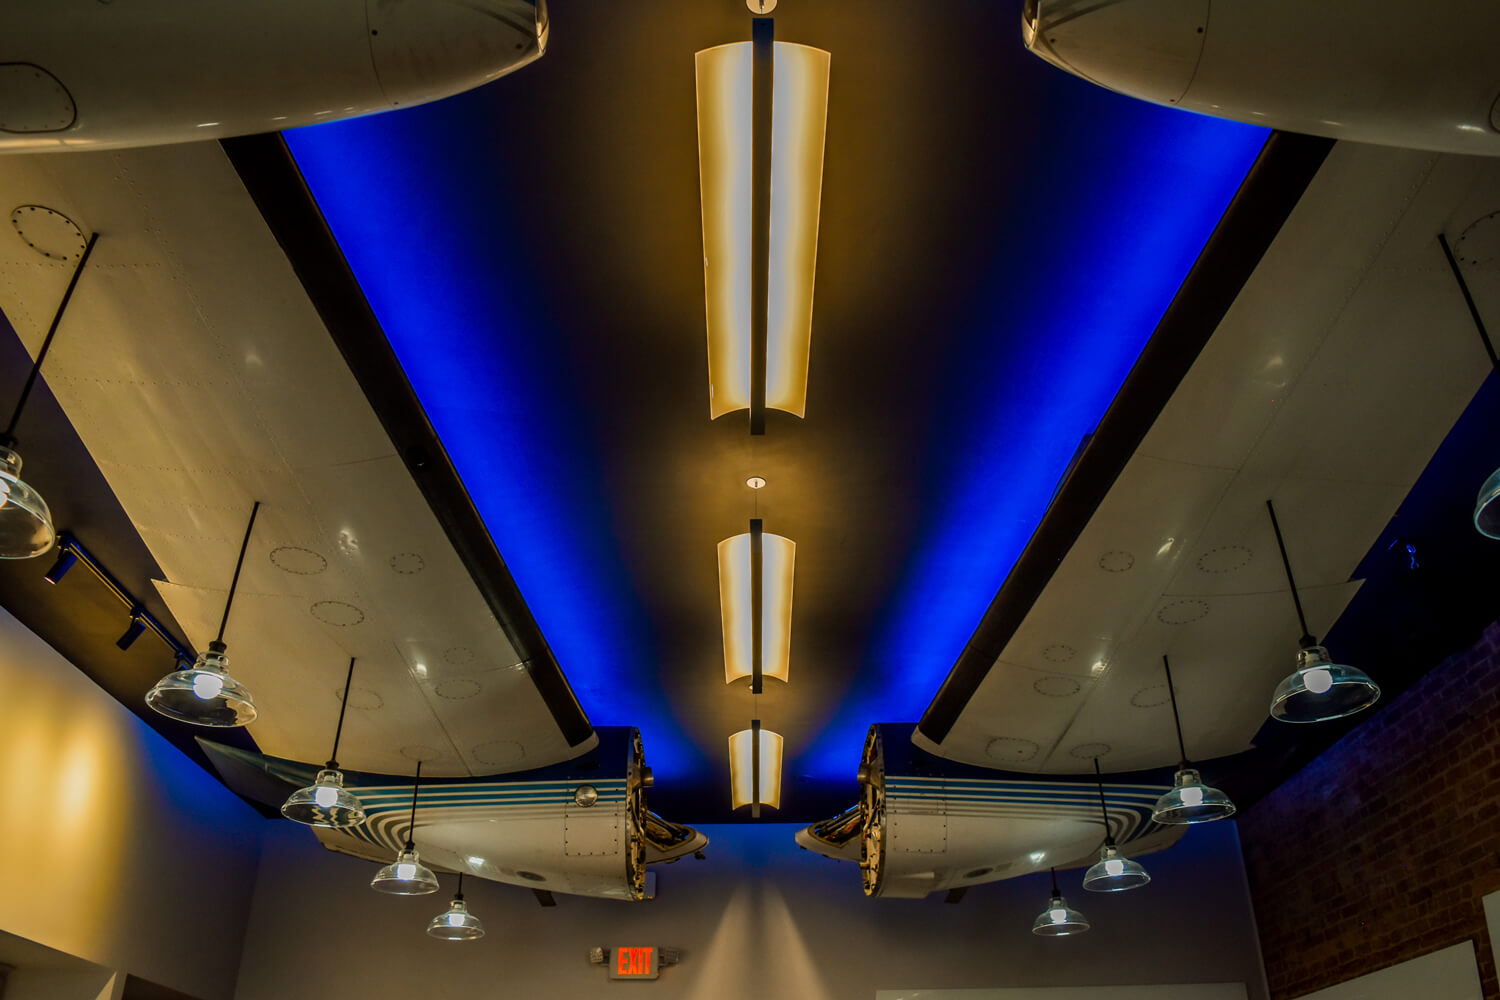 MGMWerx Collaboration Space - Airplane Wing Lighting - Designed by Foshee Architecture